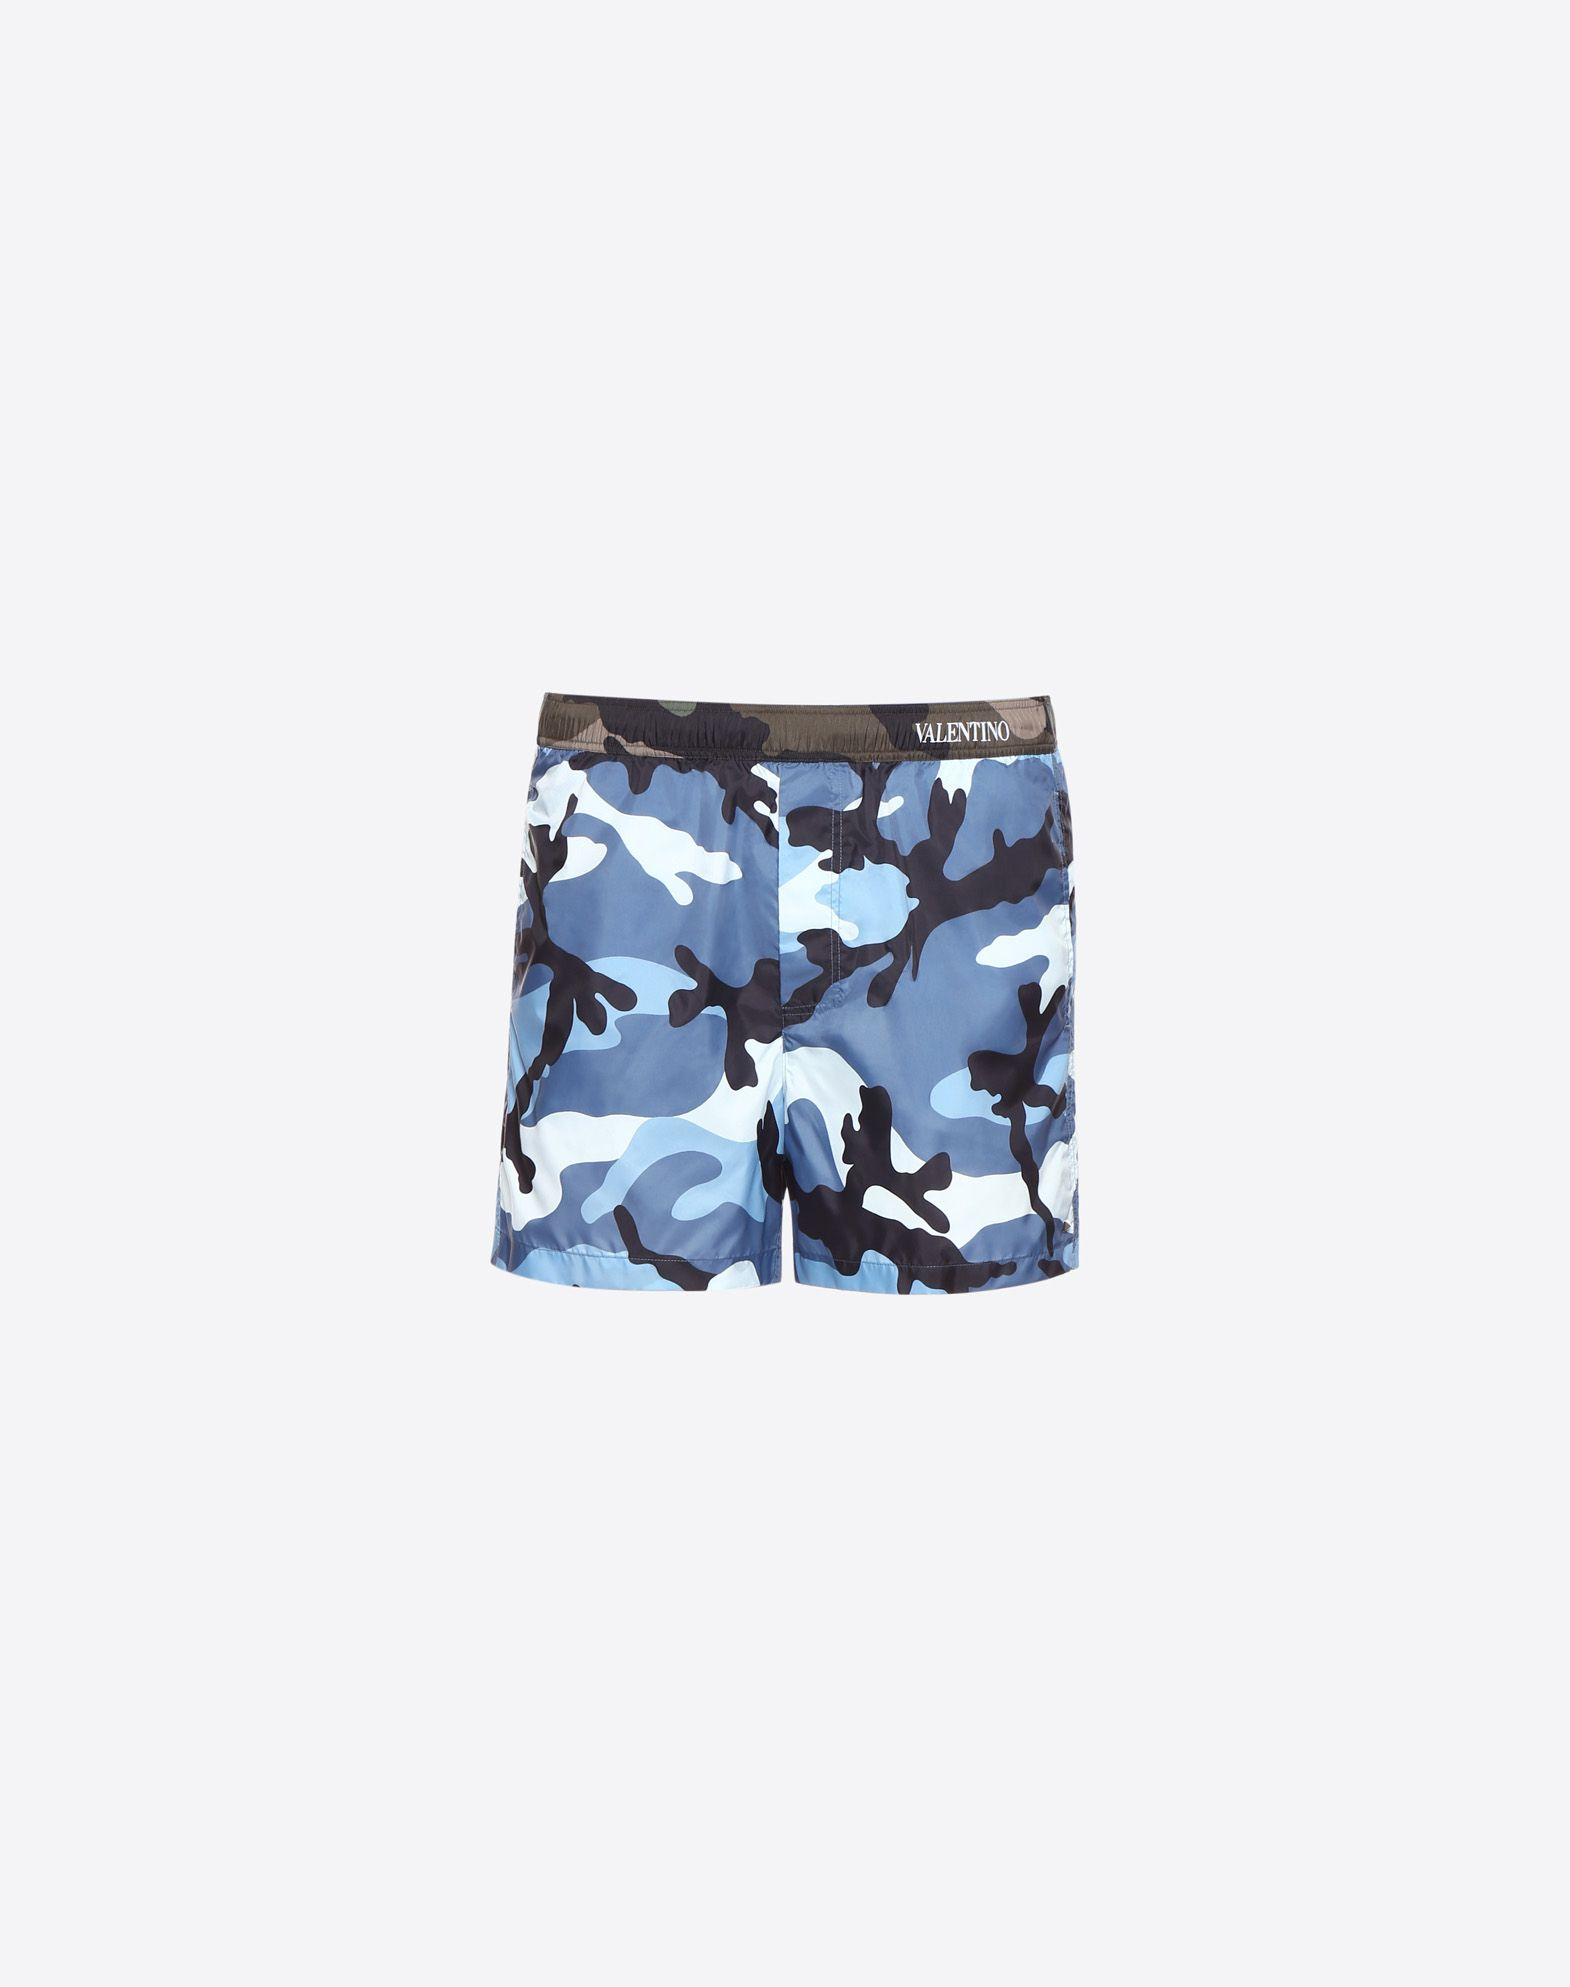 VALENTINO Logo Techno fabric Drawstring closure Camouflage Internal slip Three pockets  47224912bu